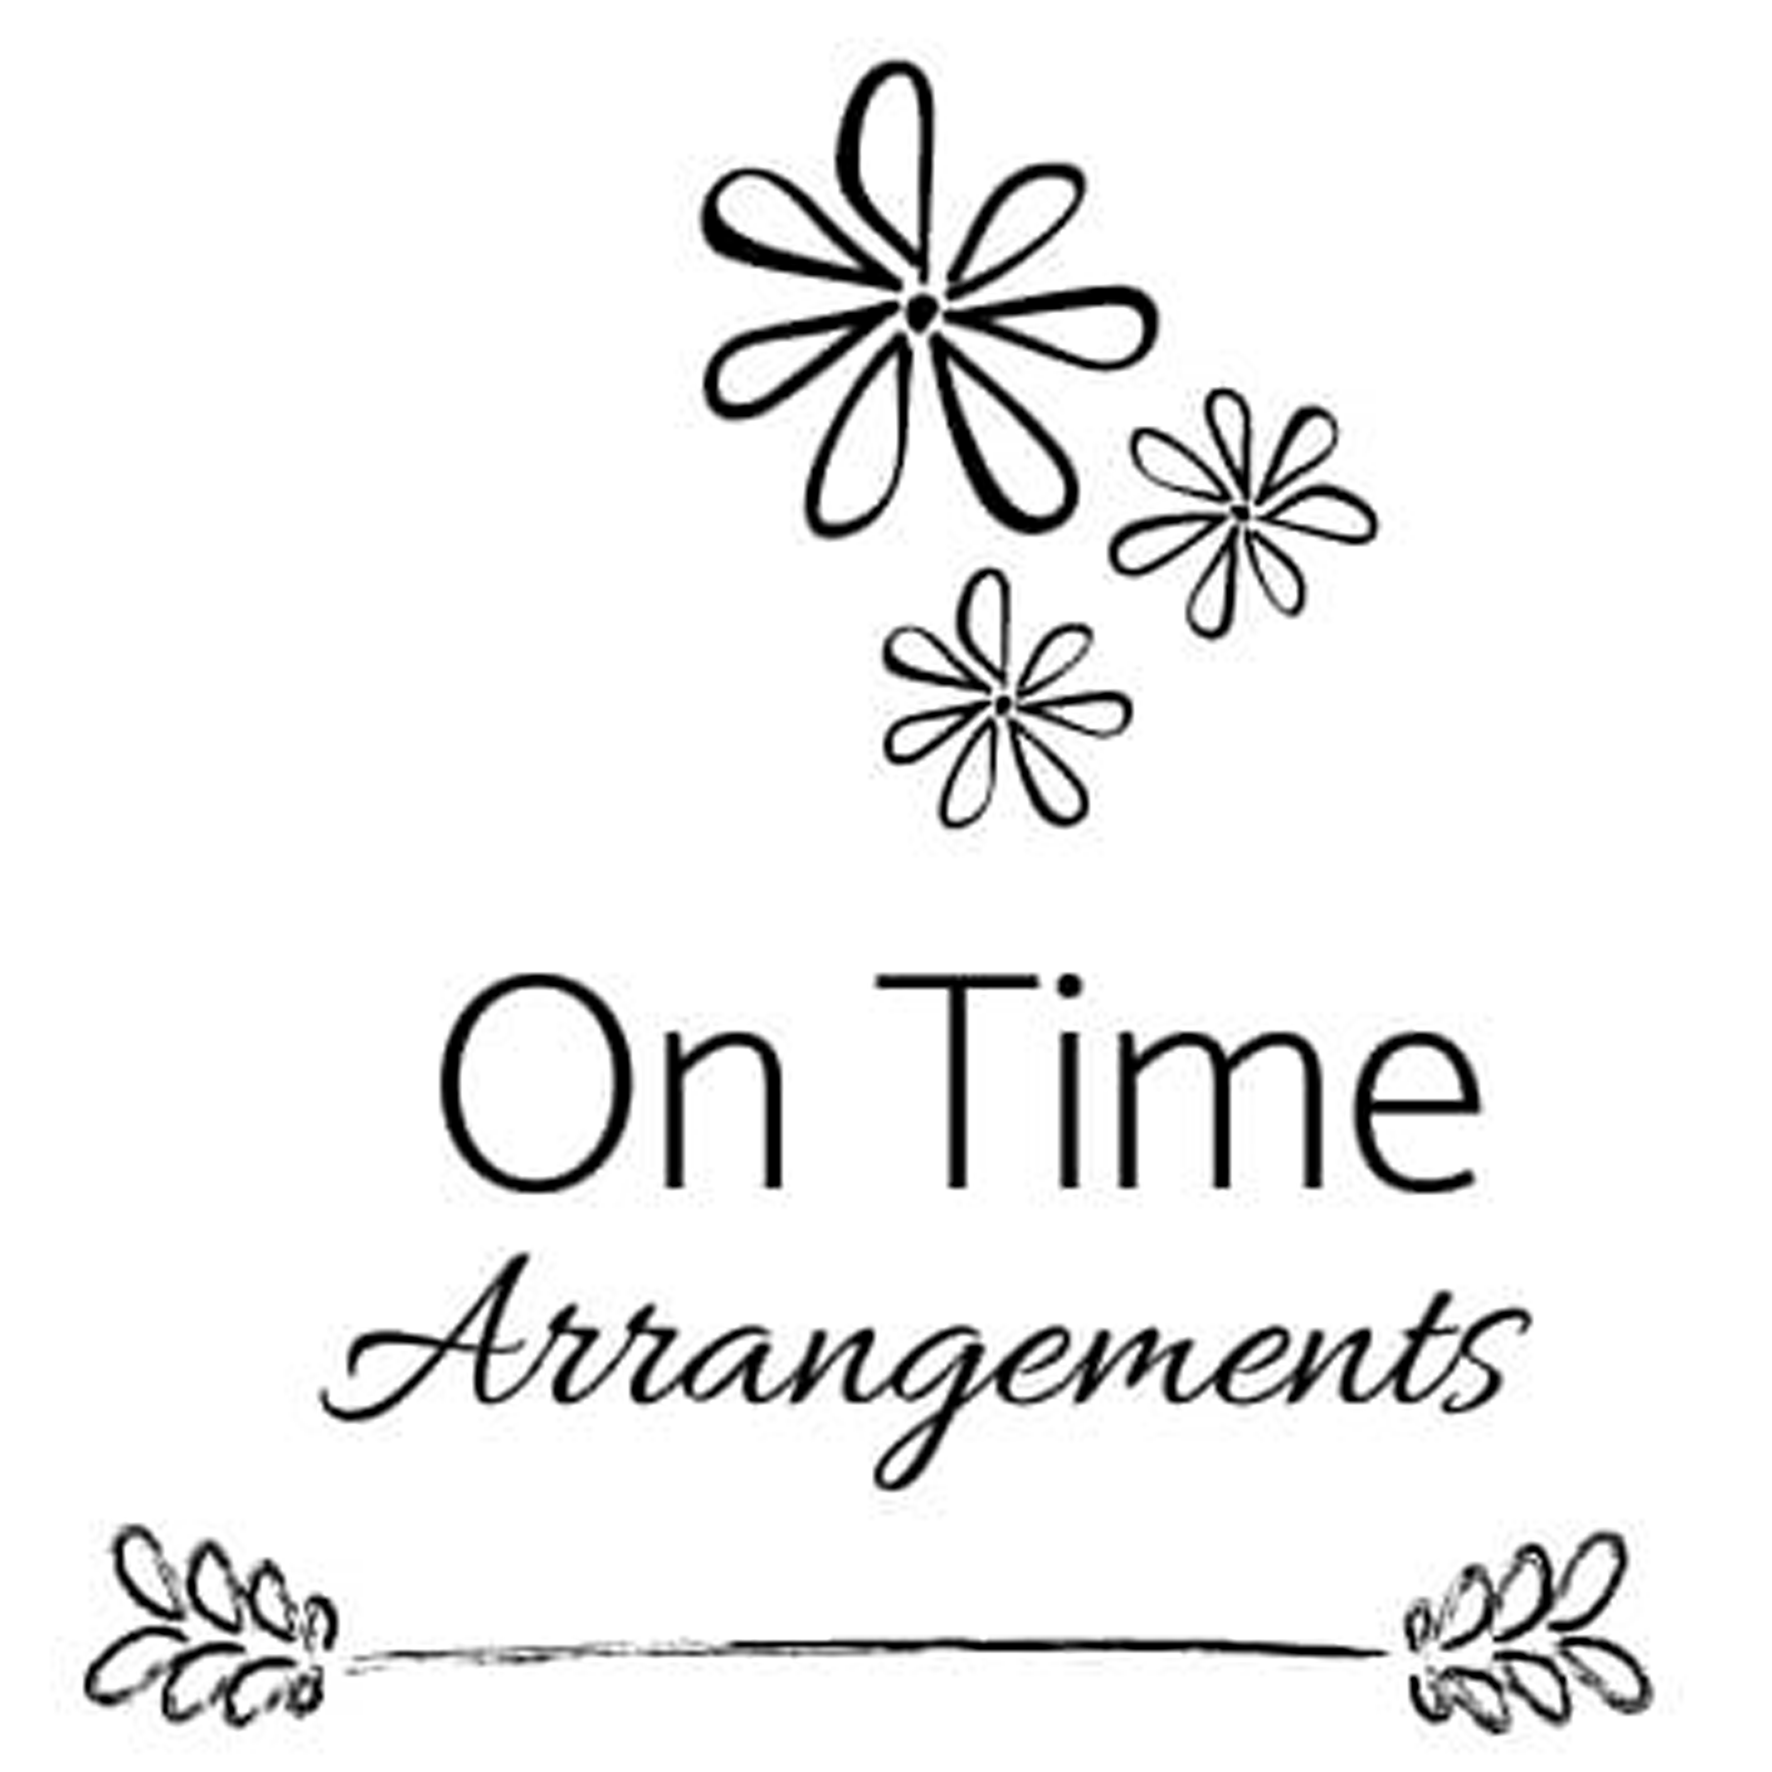 On Time Arrangements